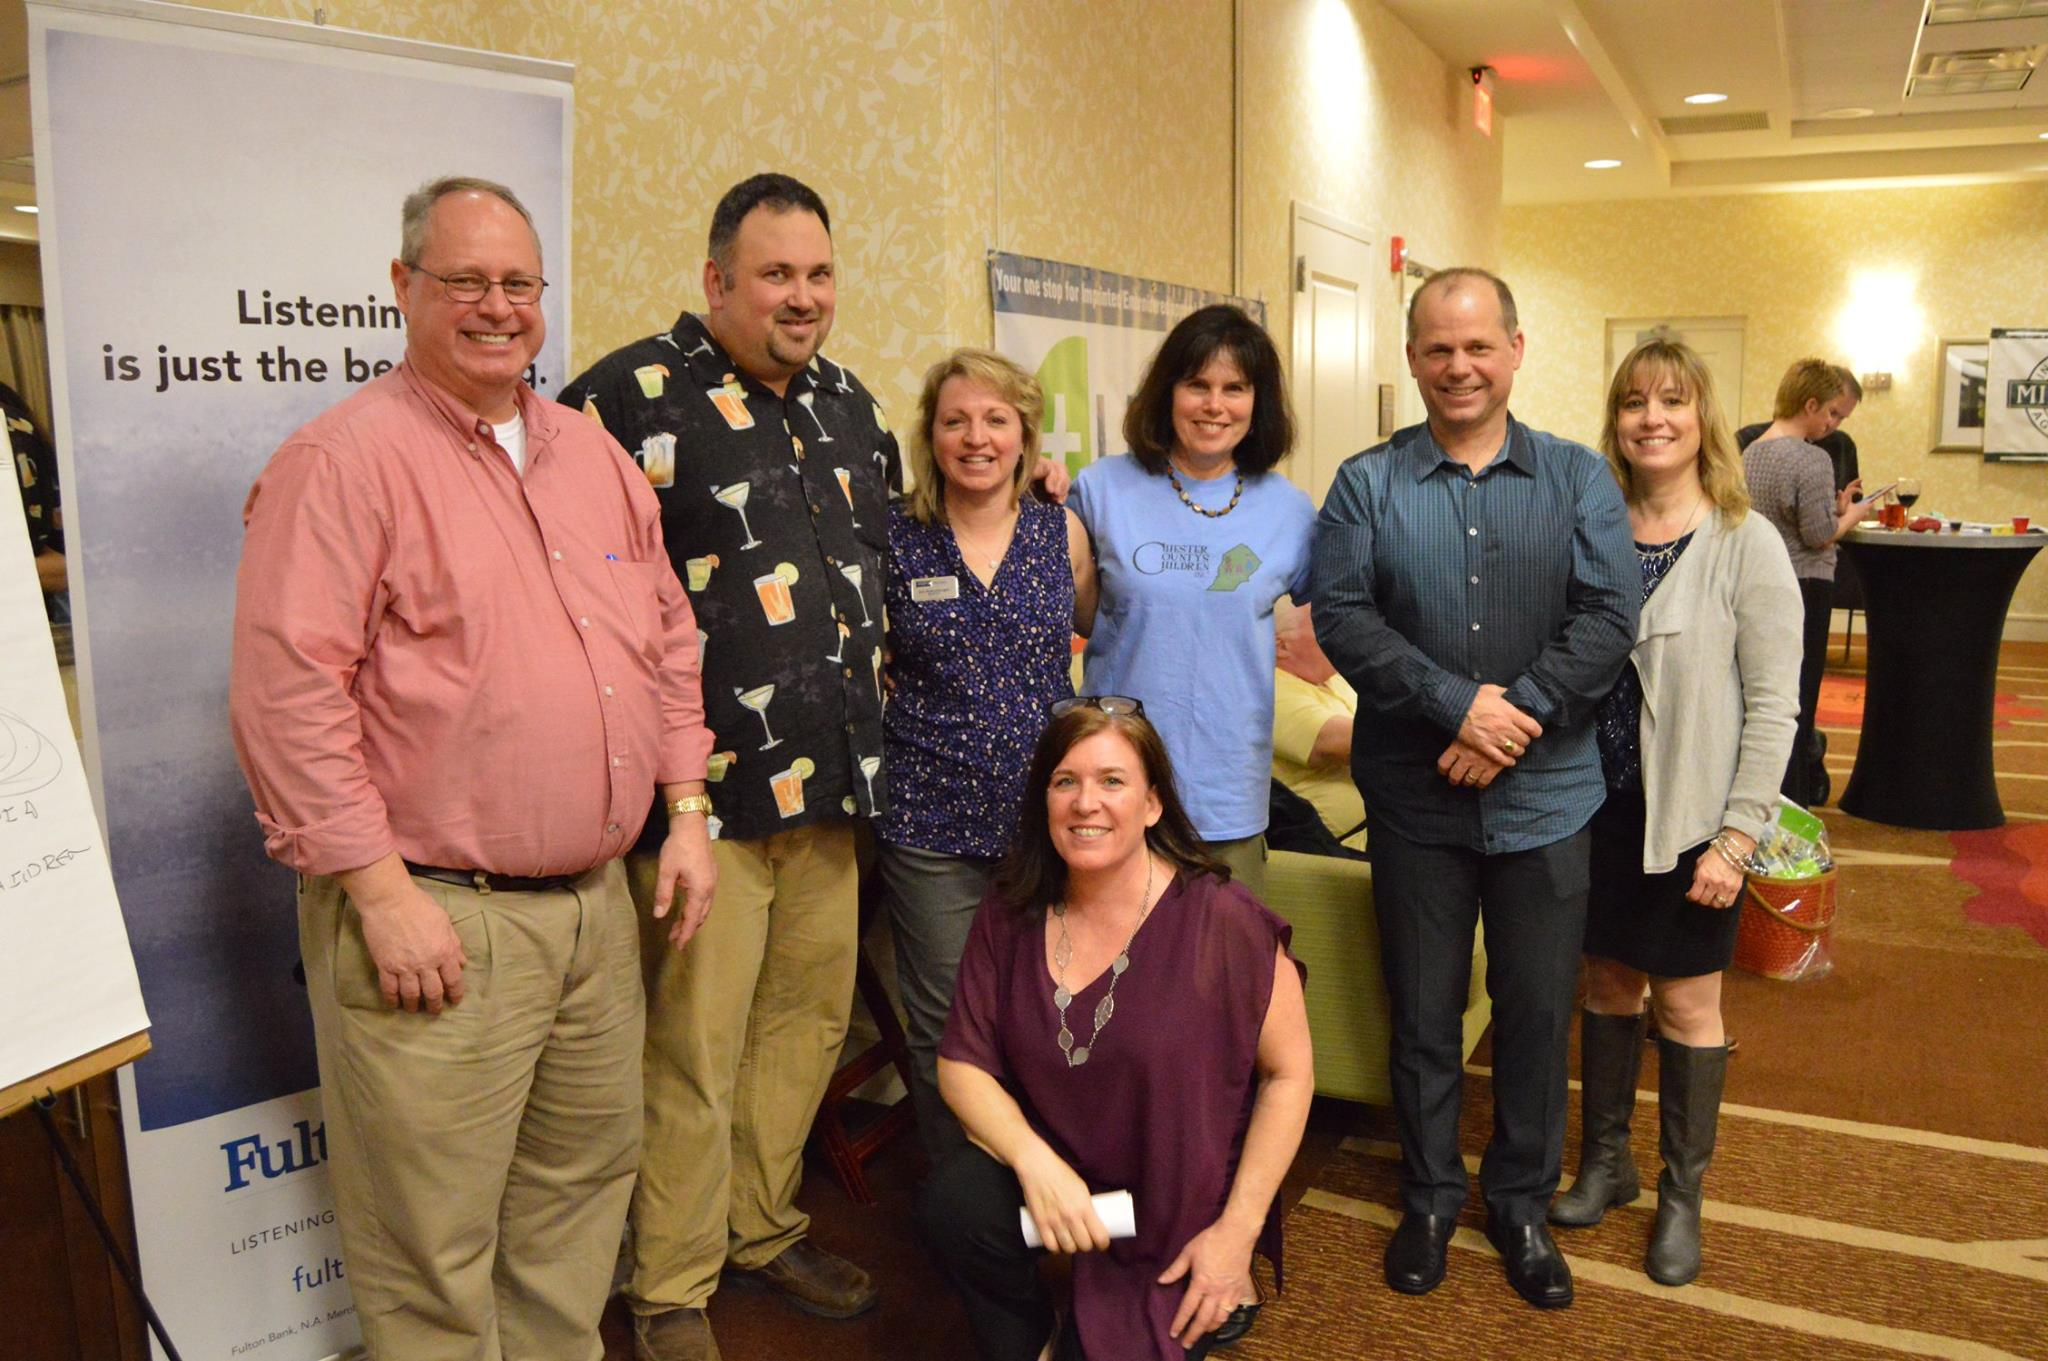 Chester County's Children, Inc. Helps to Fill the Gaps for the Underprivileged